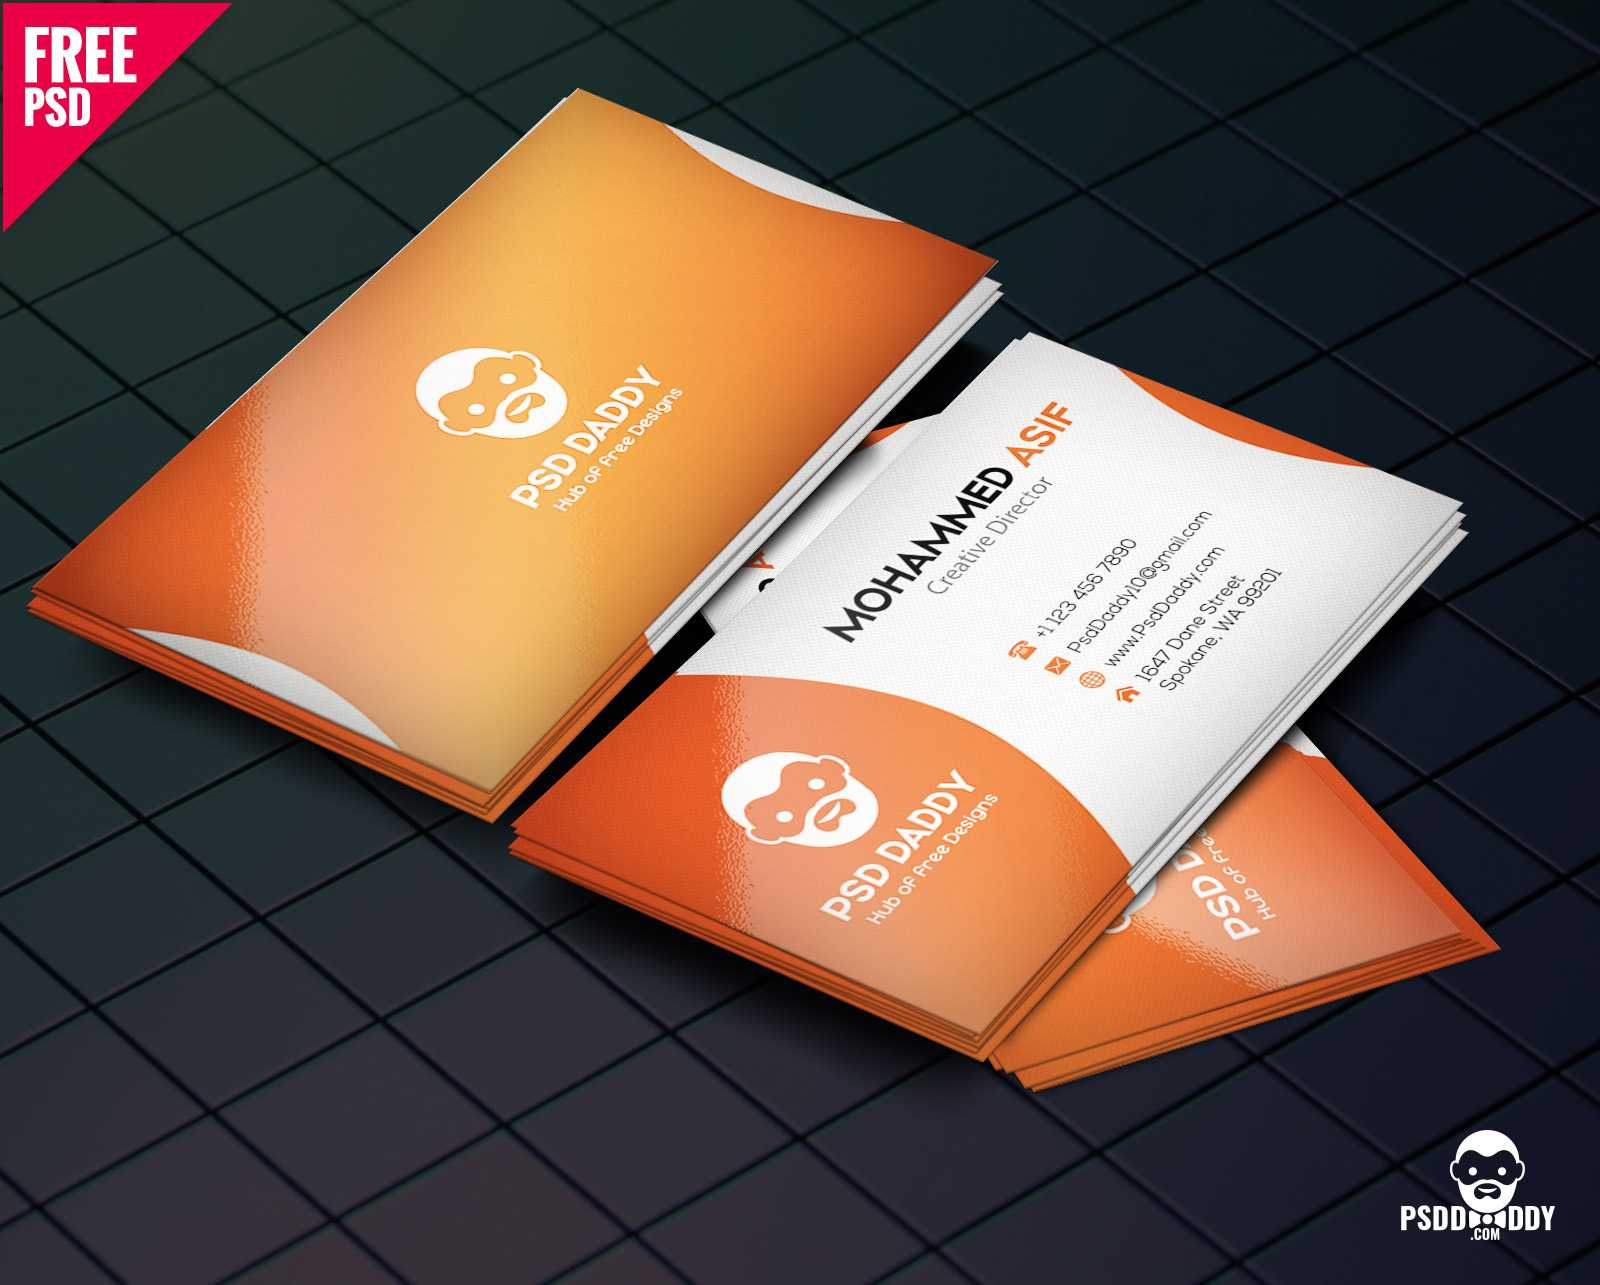 Download] Business Card Design Psd Free | Psddaddy with Free Psd Visiting Card Templates Download